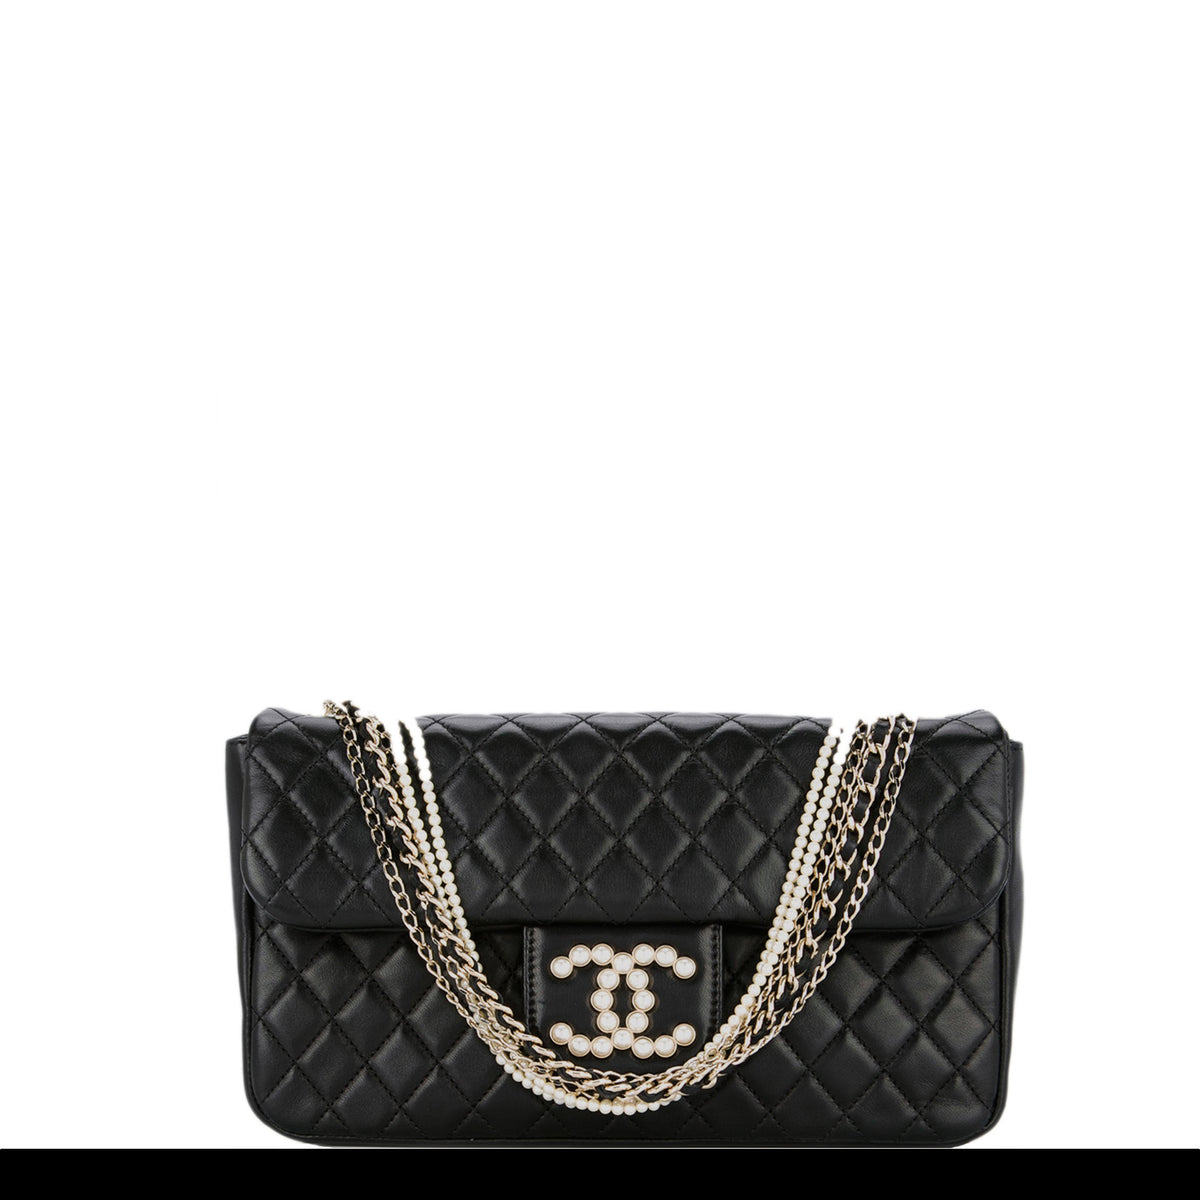 4fefefaf3142c1 Chanel Lambskin Diamond Stitch Pearl Chain Handle Classic Flap – House of  Carver